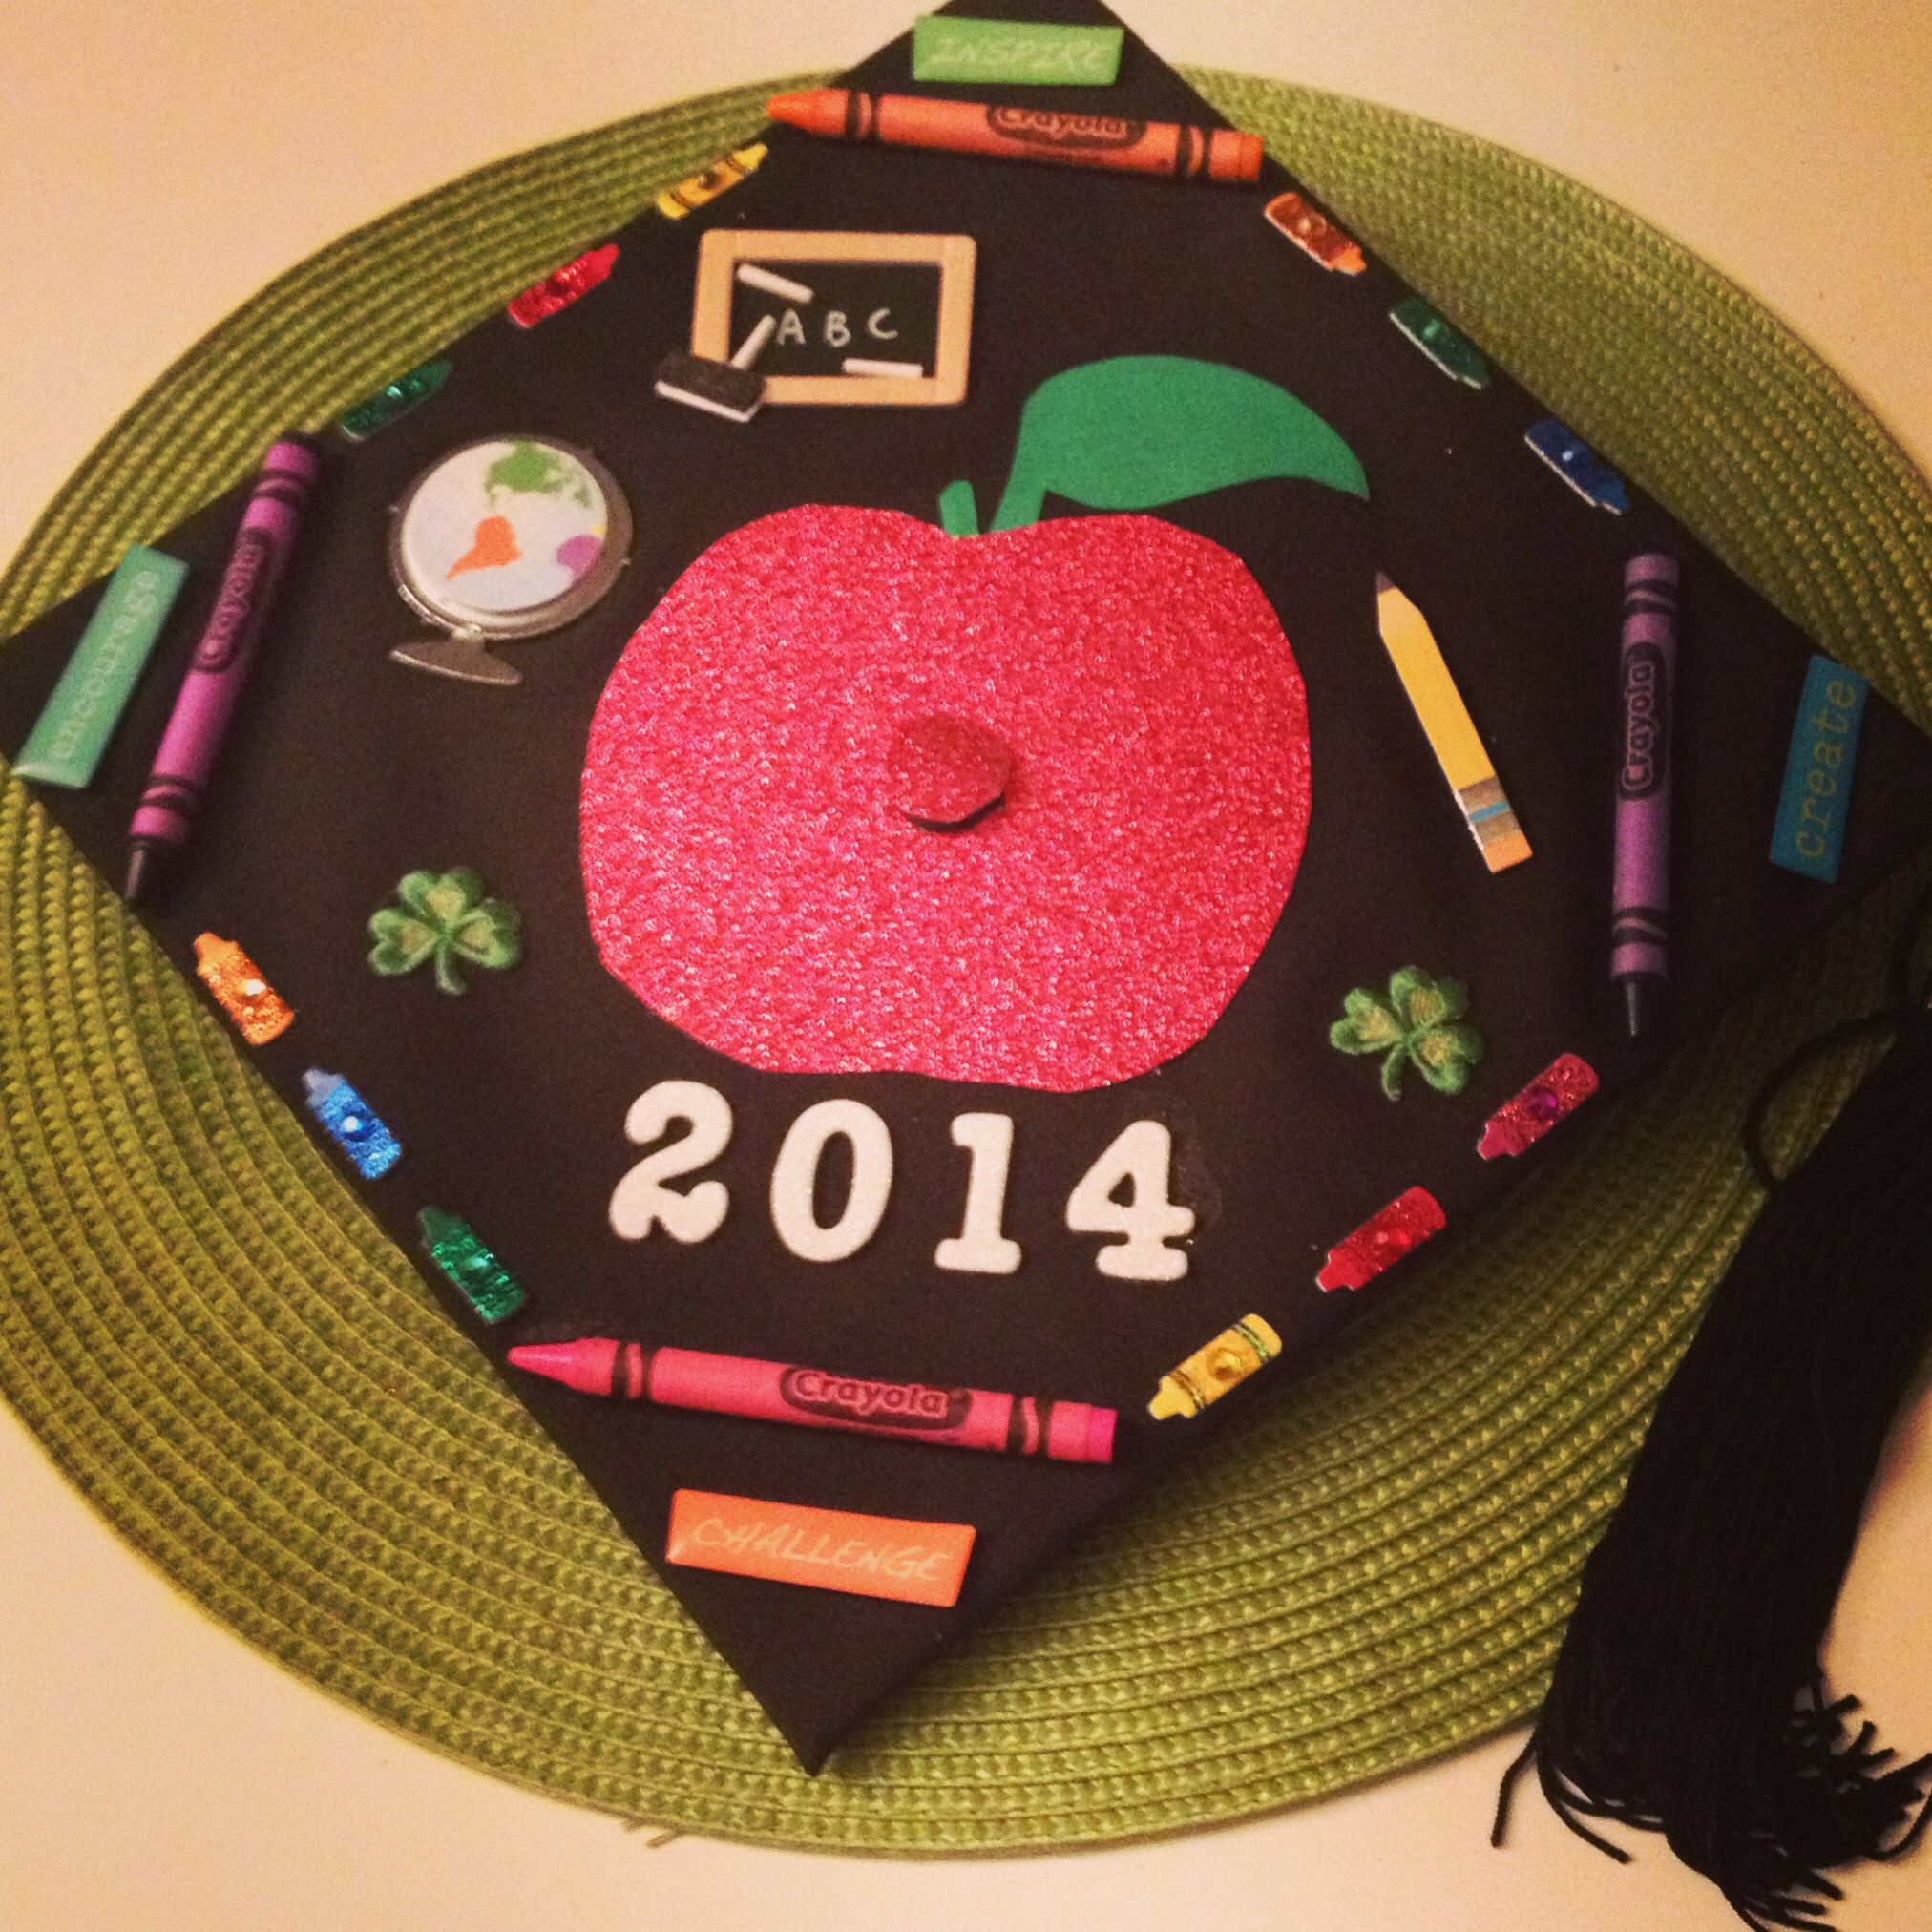 Decorating graduation cap ideas for teachers - Future Teacher Graduation Cap